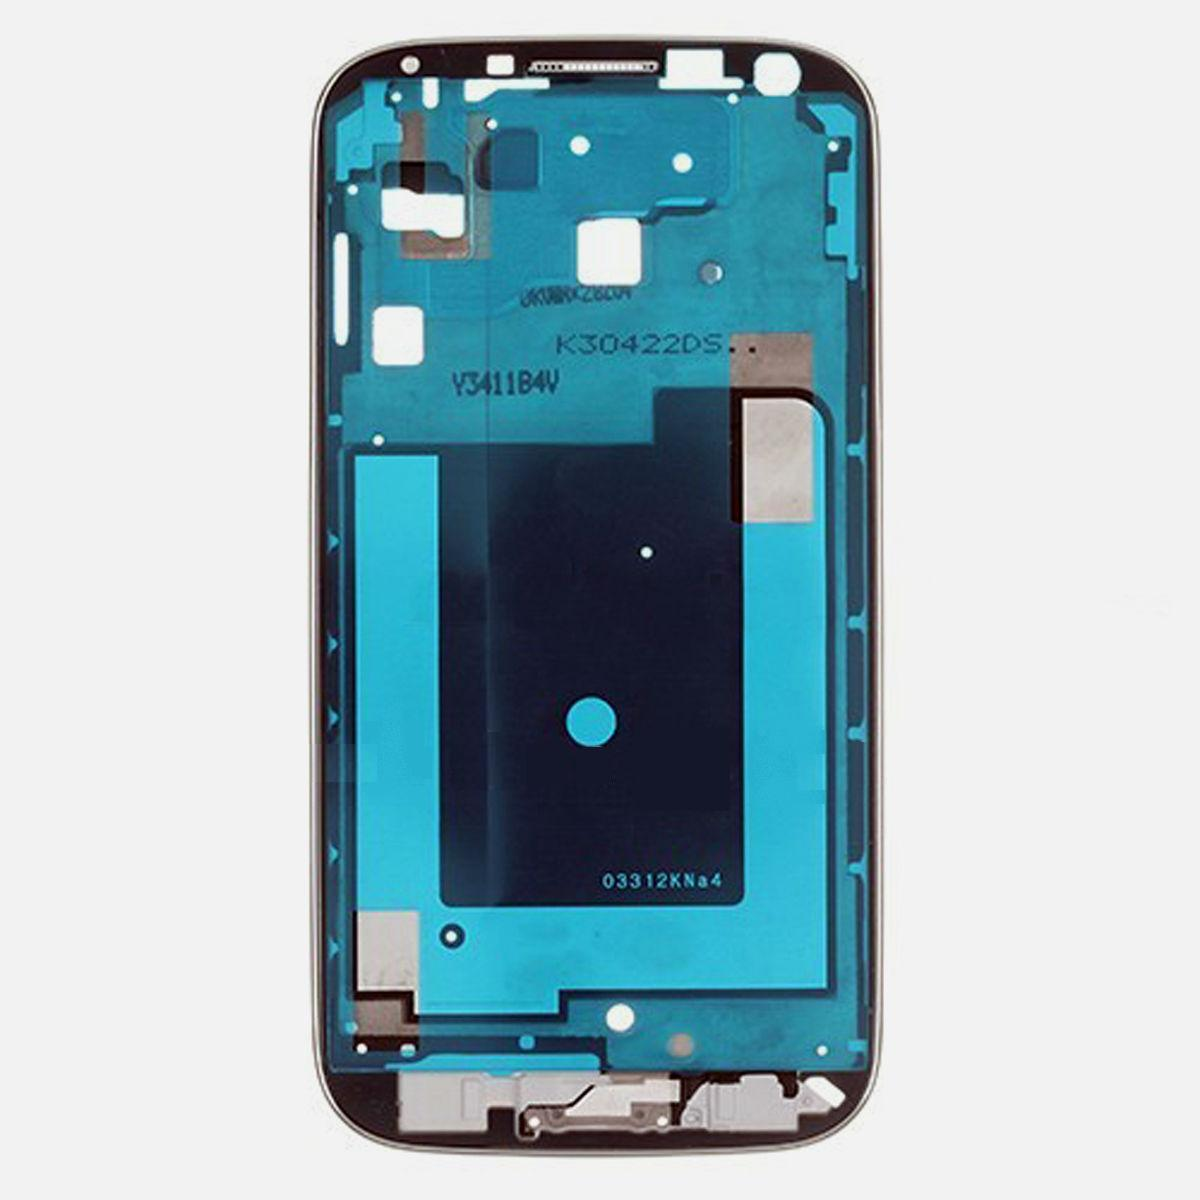 Samsung Galaxy S4 i9500 i9505 Lcd Bezel Metal Board Housing Cover